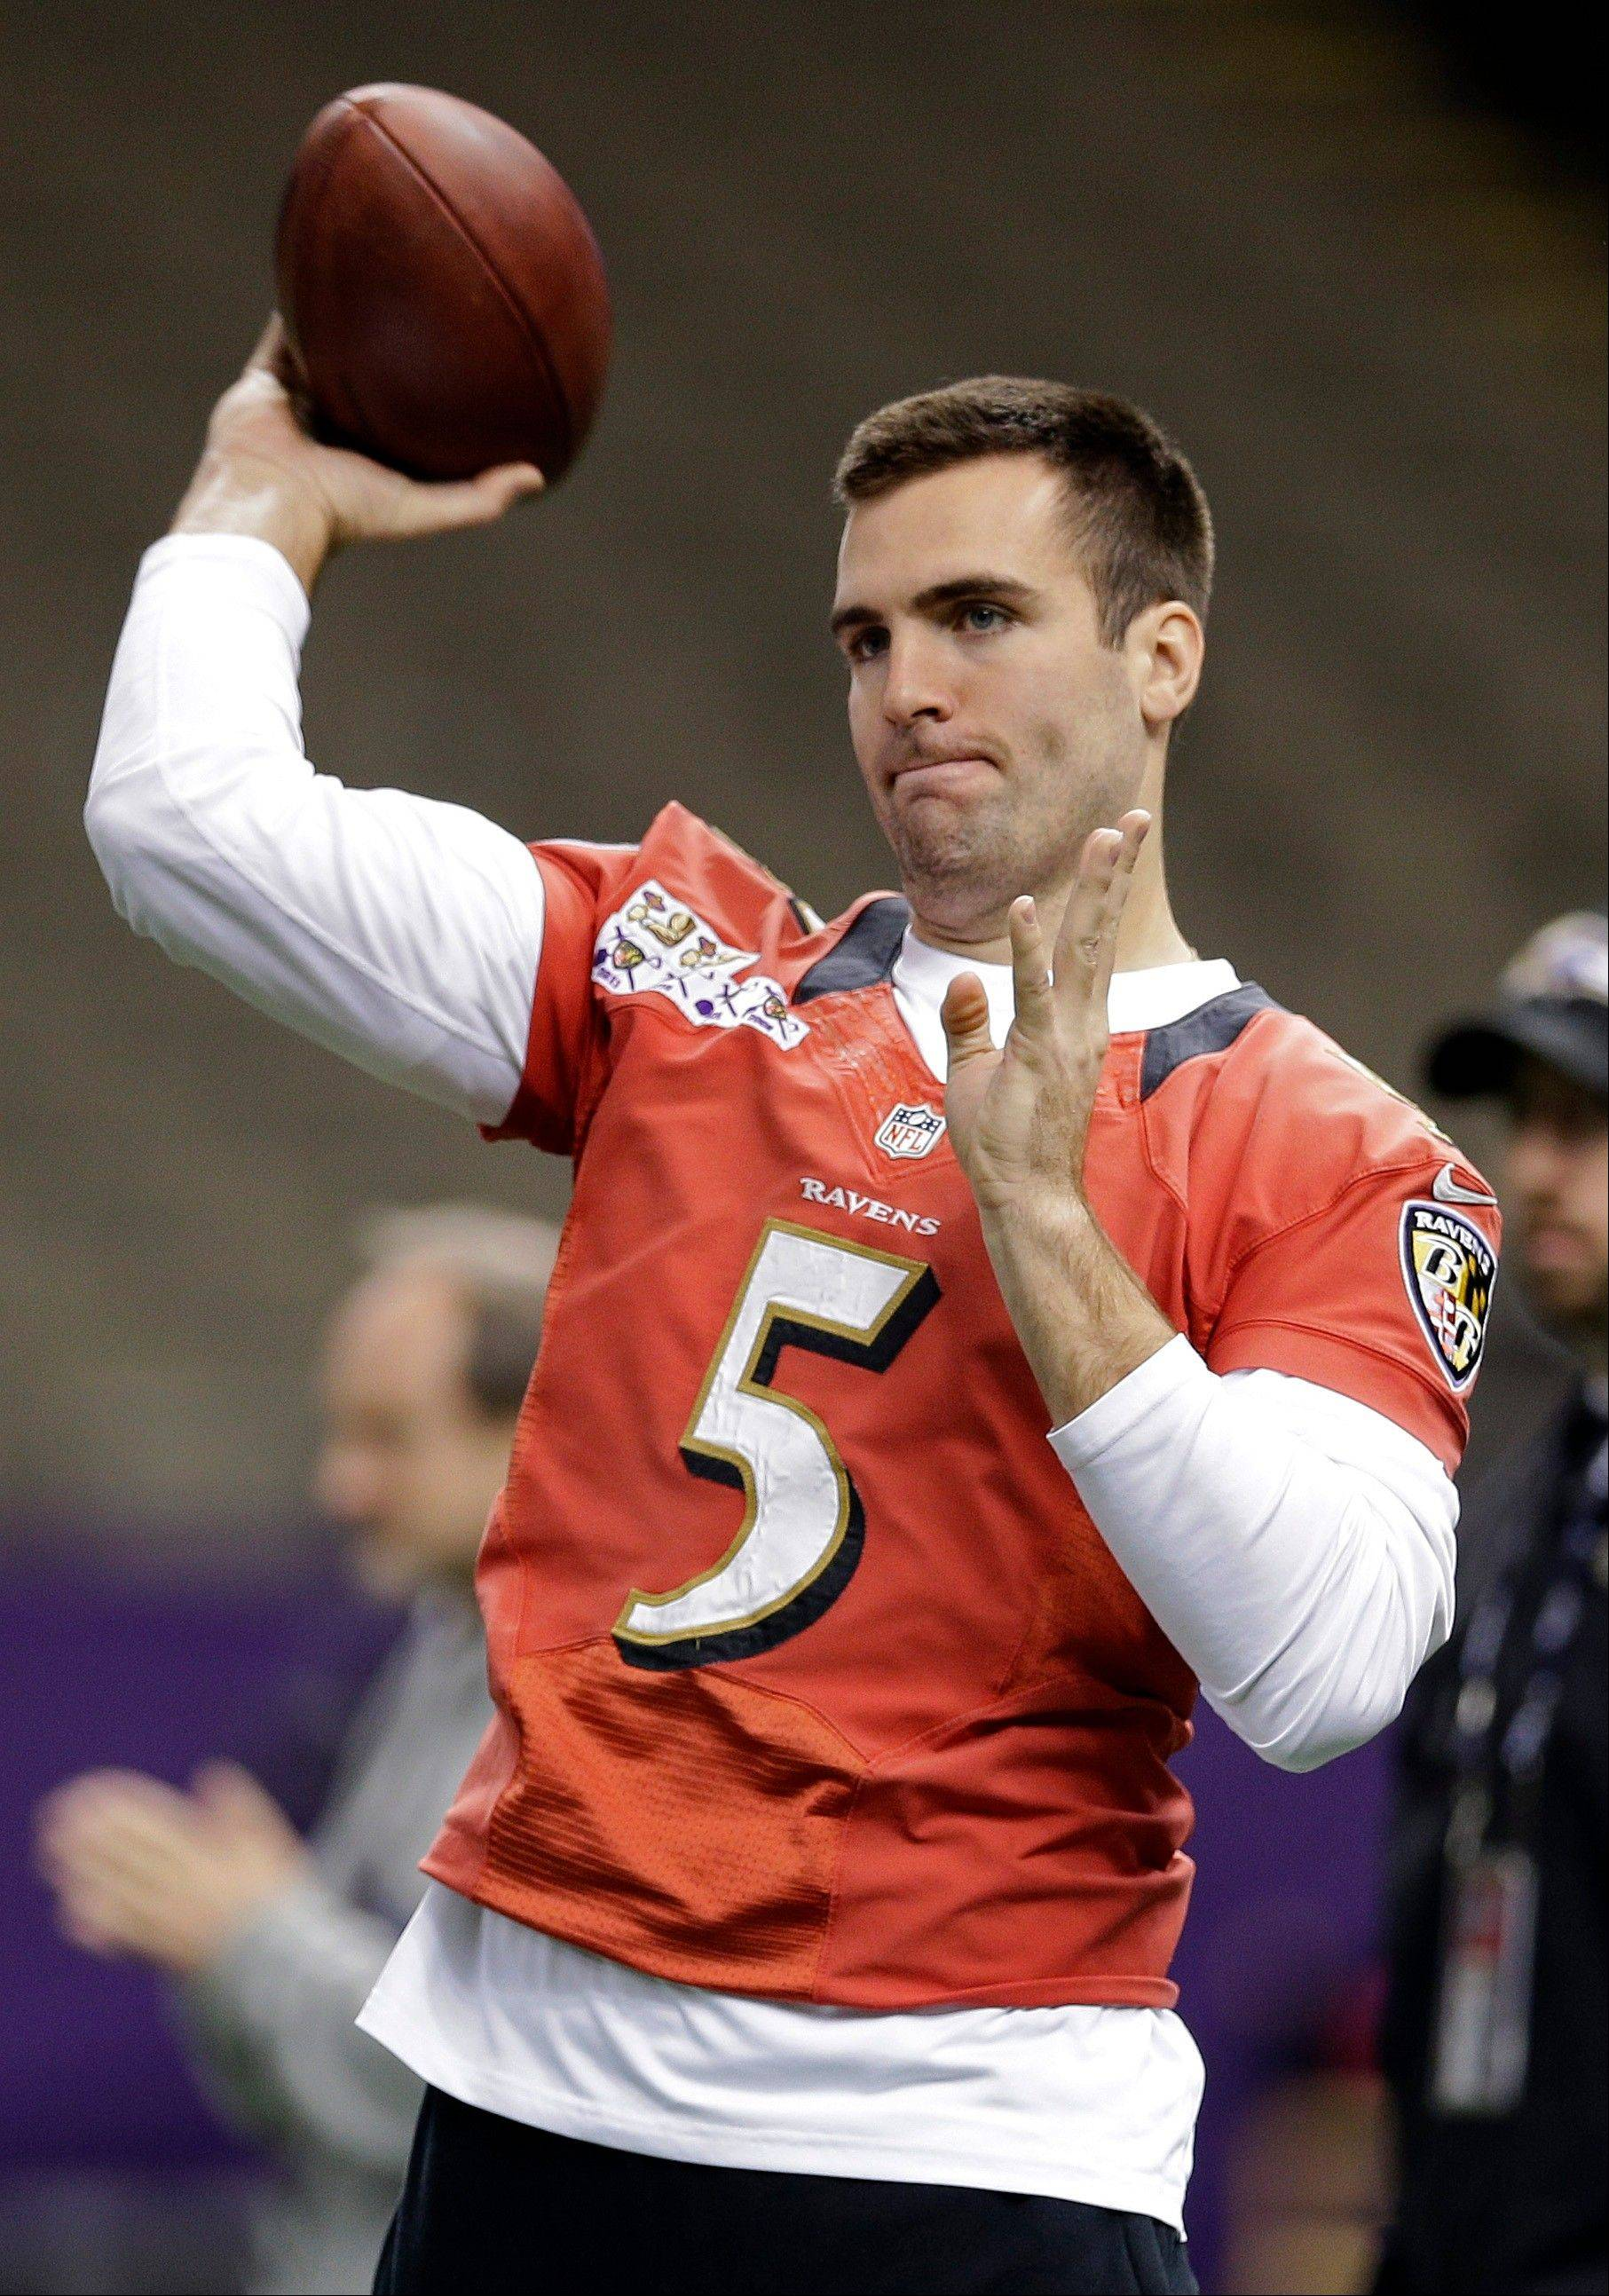 Baltimore Ravens quarterback Joe Flacco throws a pass during an NFL Super Bowl XLVII walkthrough on Saturday.